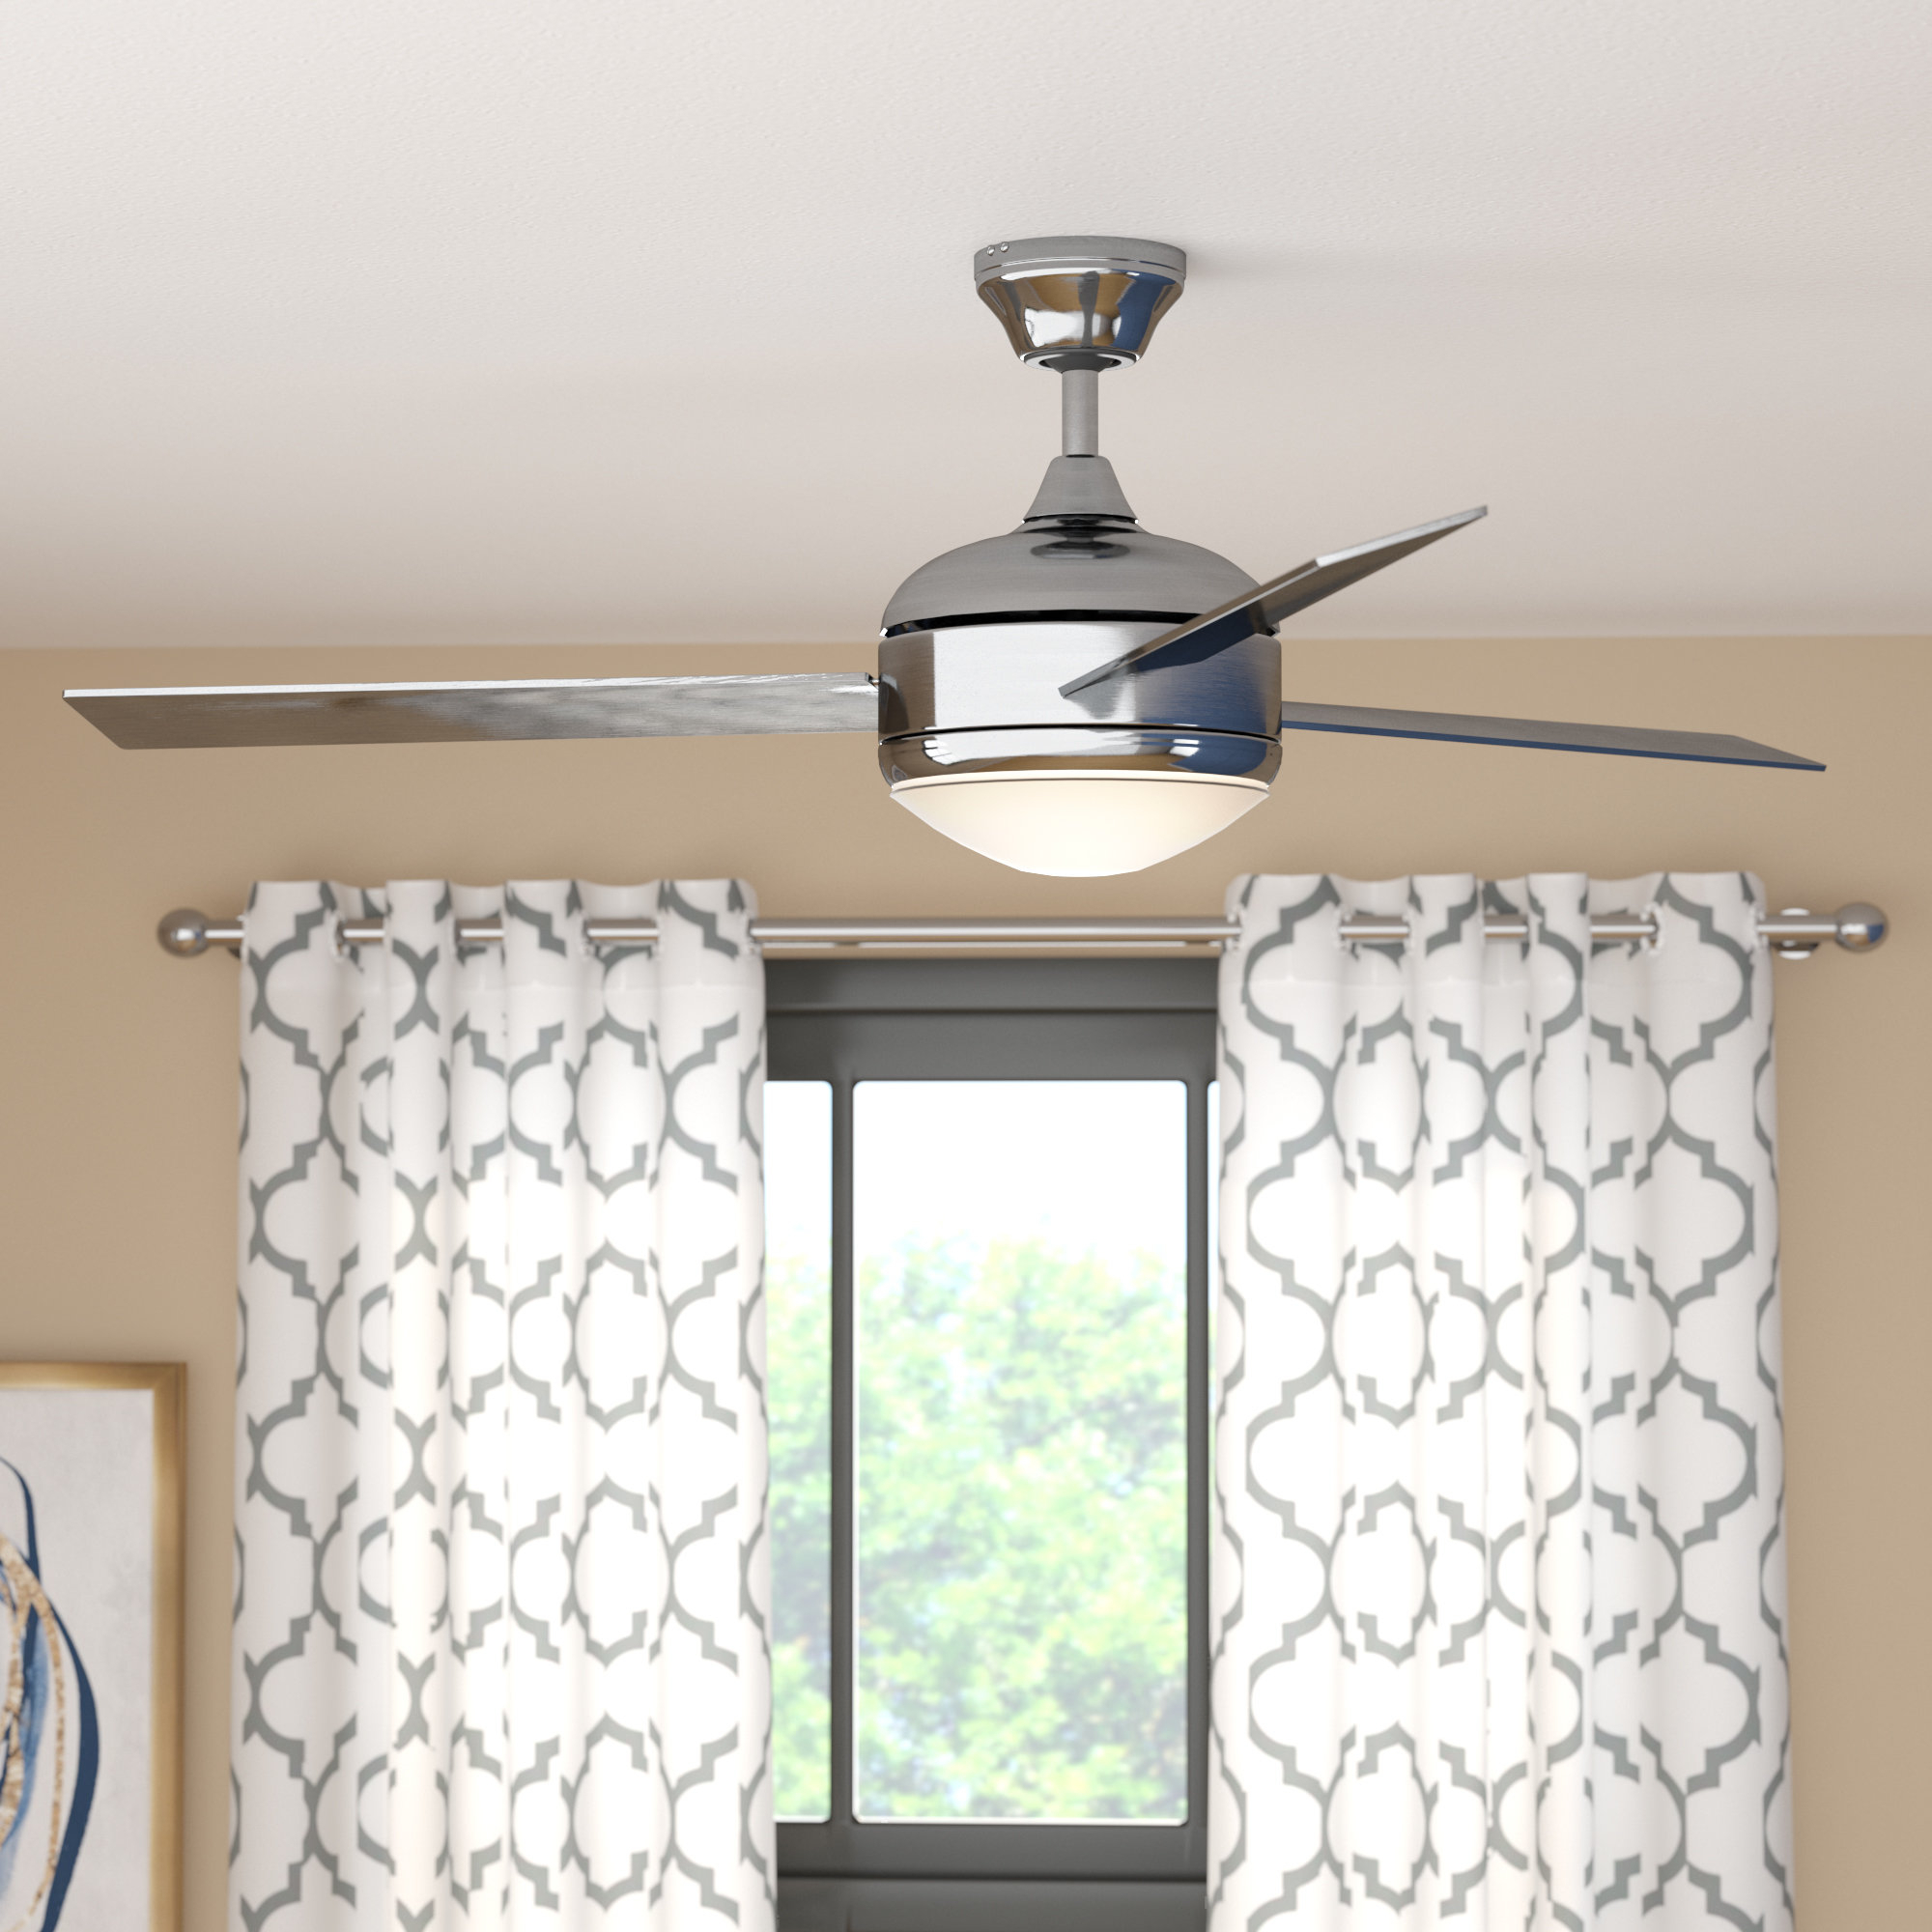 "Dennis 3 Blade Ceiling Fans With Regard To Preferred 48"" Dennis 3 Blade Ceiling Fan With Remote, Light Kit Included (View 11 of 20)"